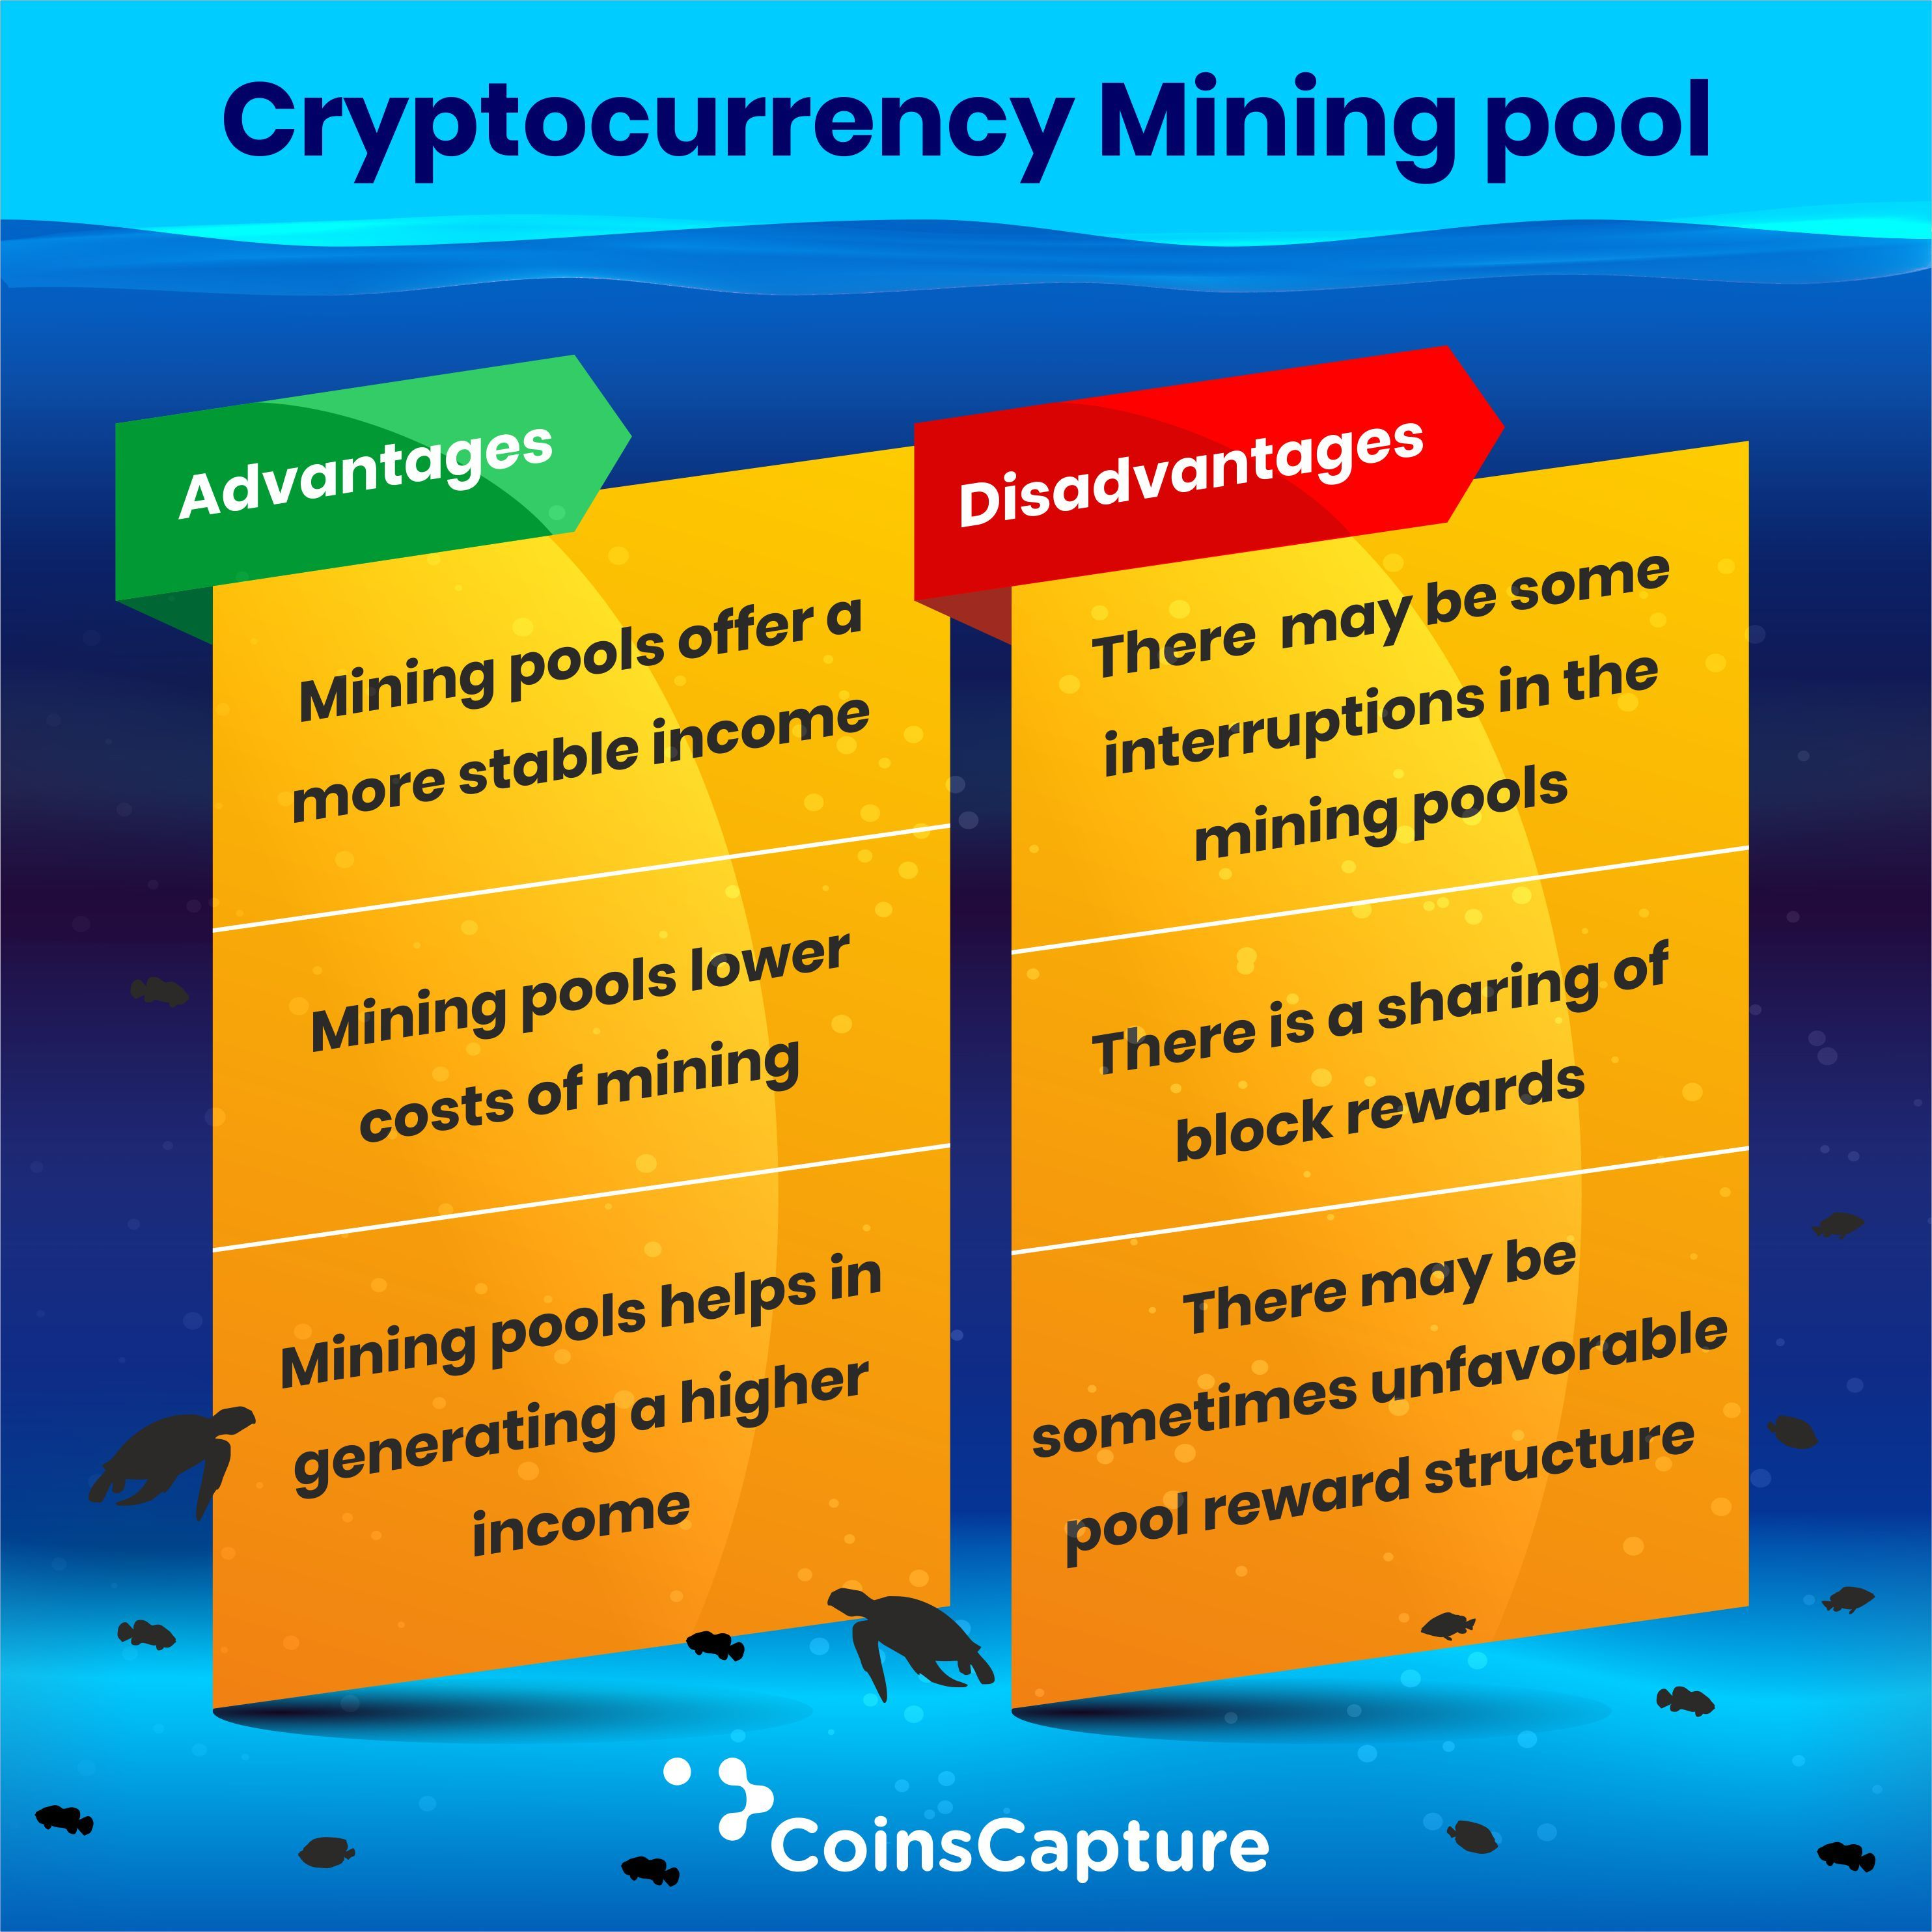 disadvantages of investing in cryptocurrency